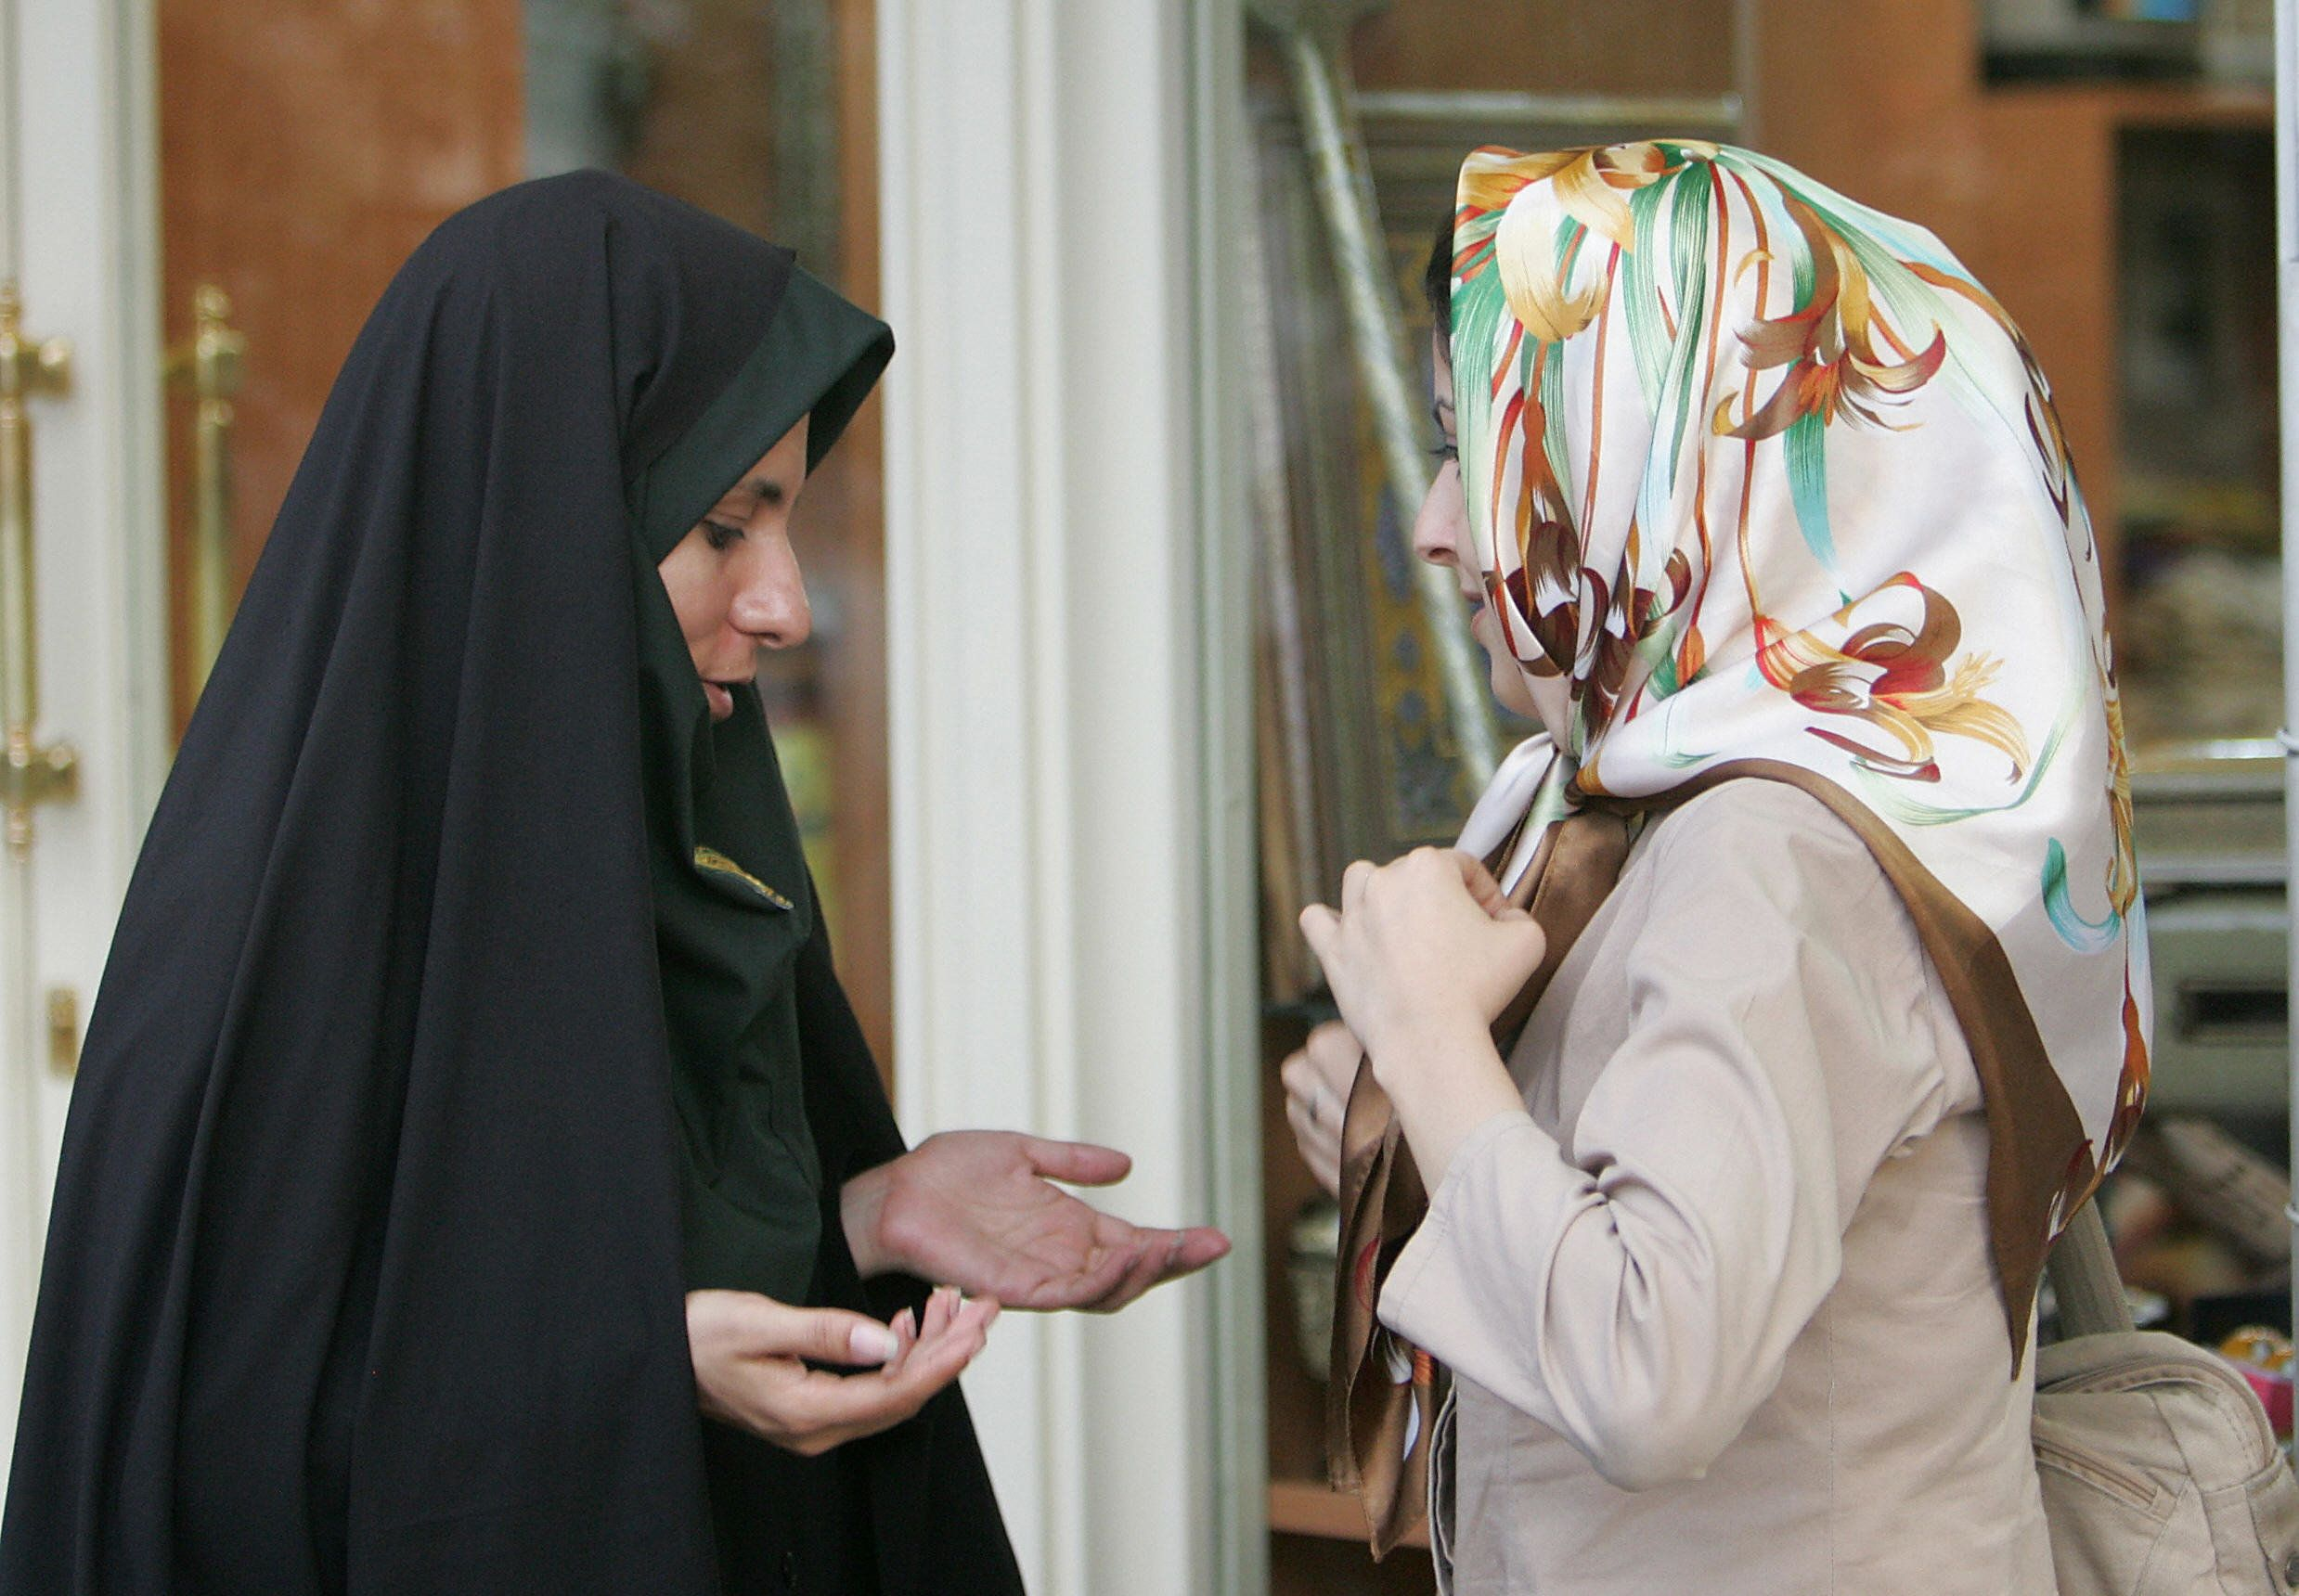 Iran Will Stop Arresting People For Violating 'Islamic' Dress Code